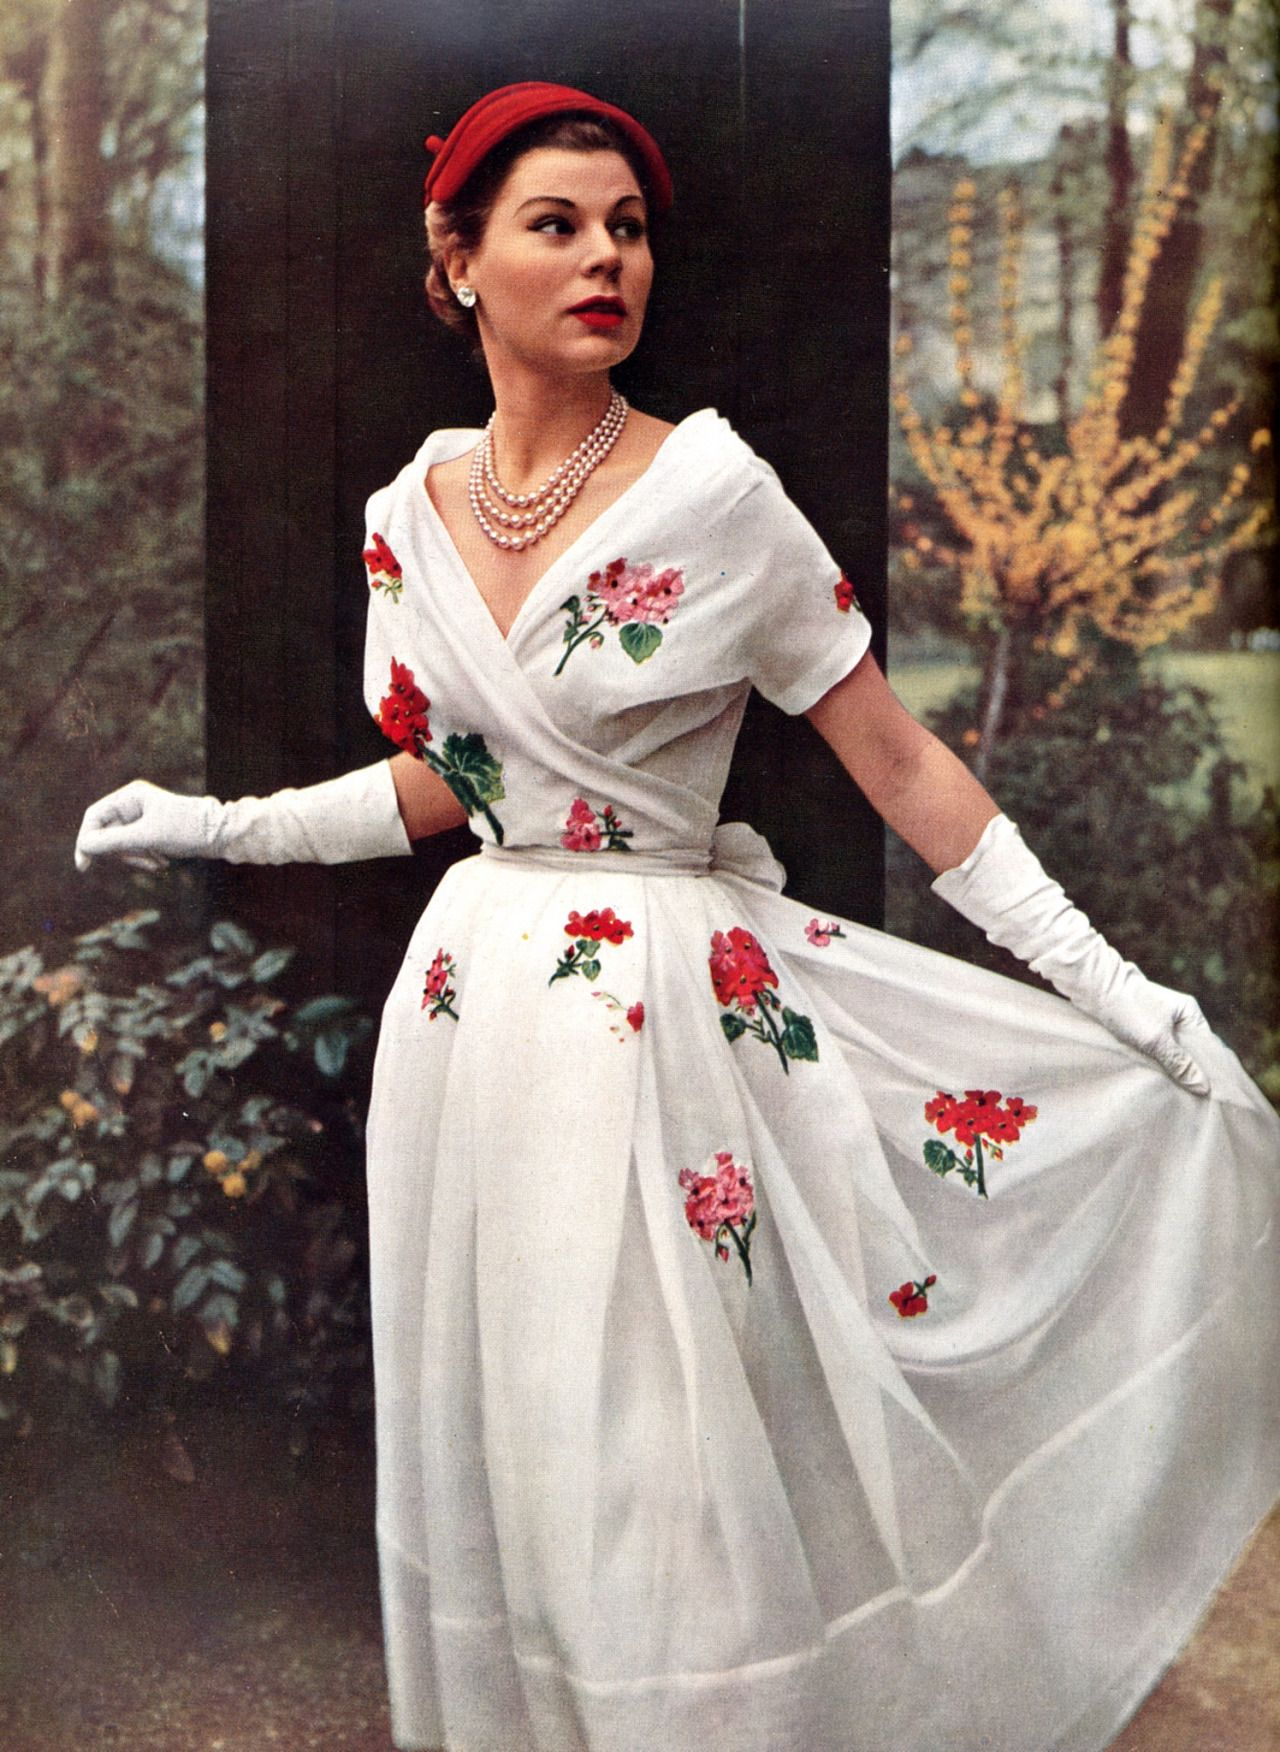 Dress by Christian Dior 1953 Lily's Vintage Clothing